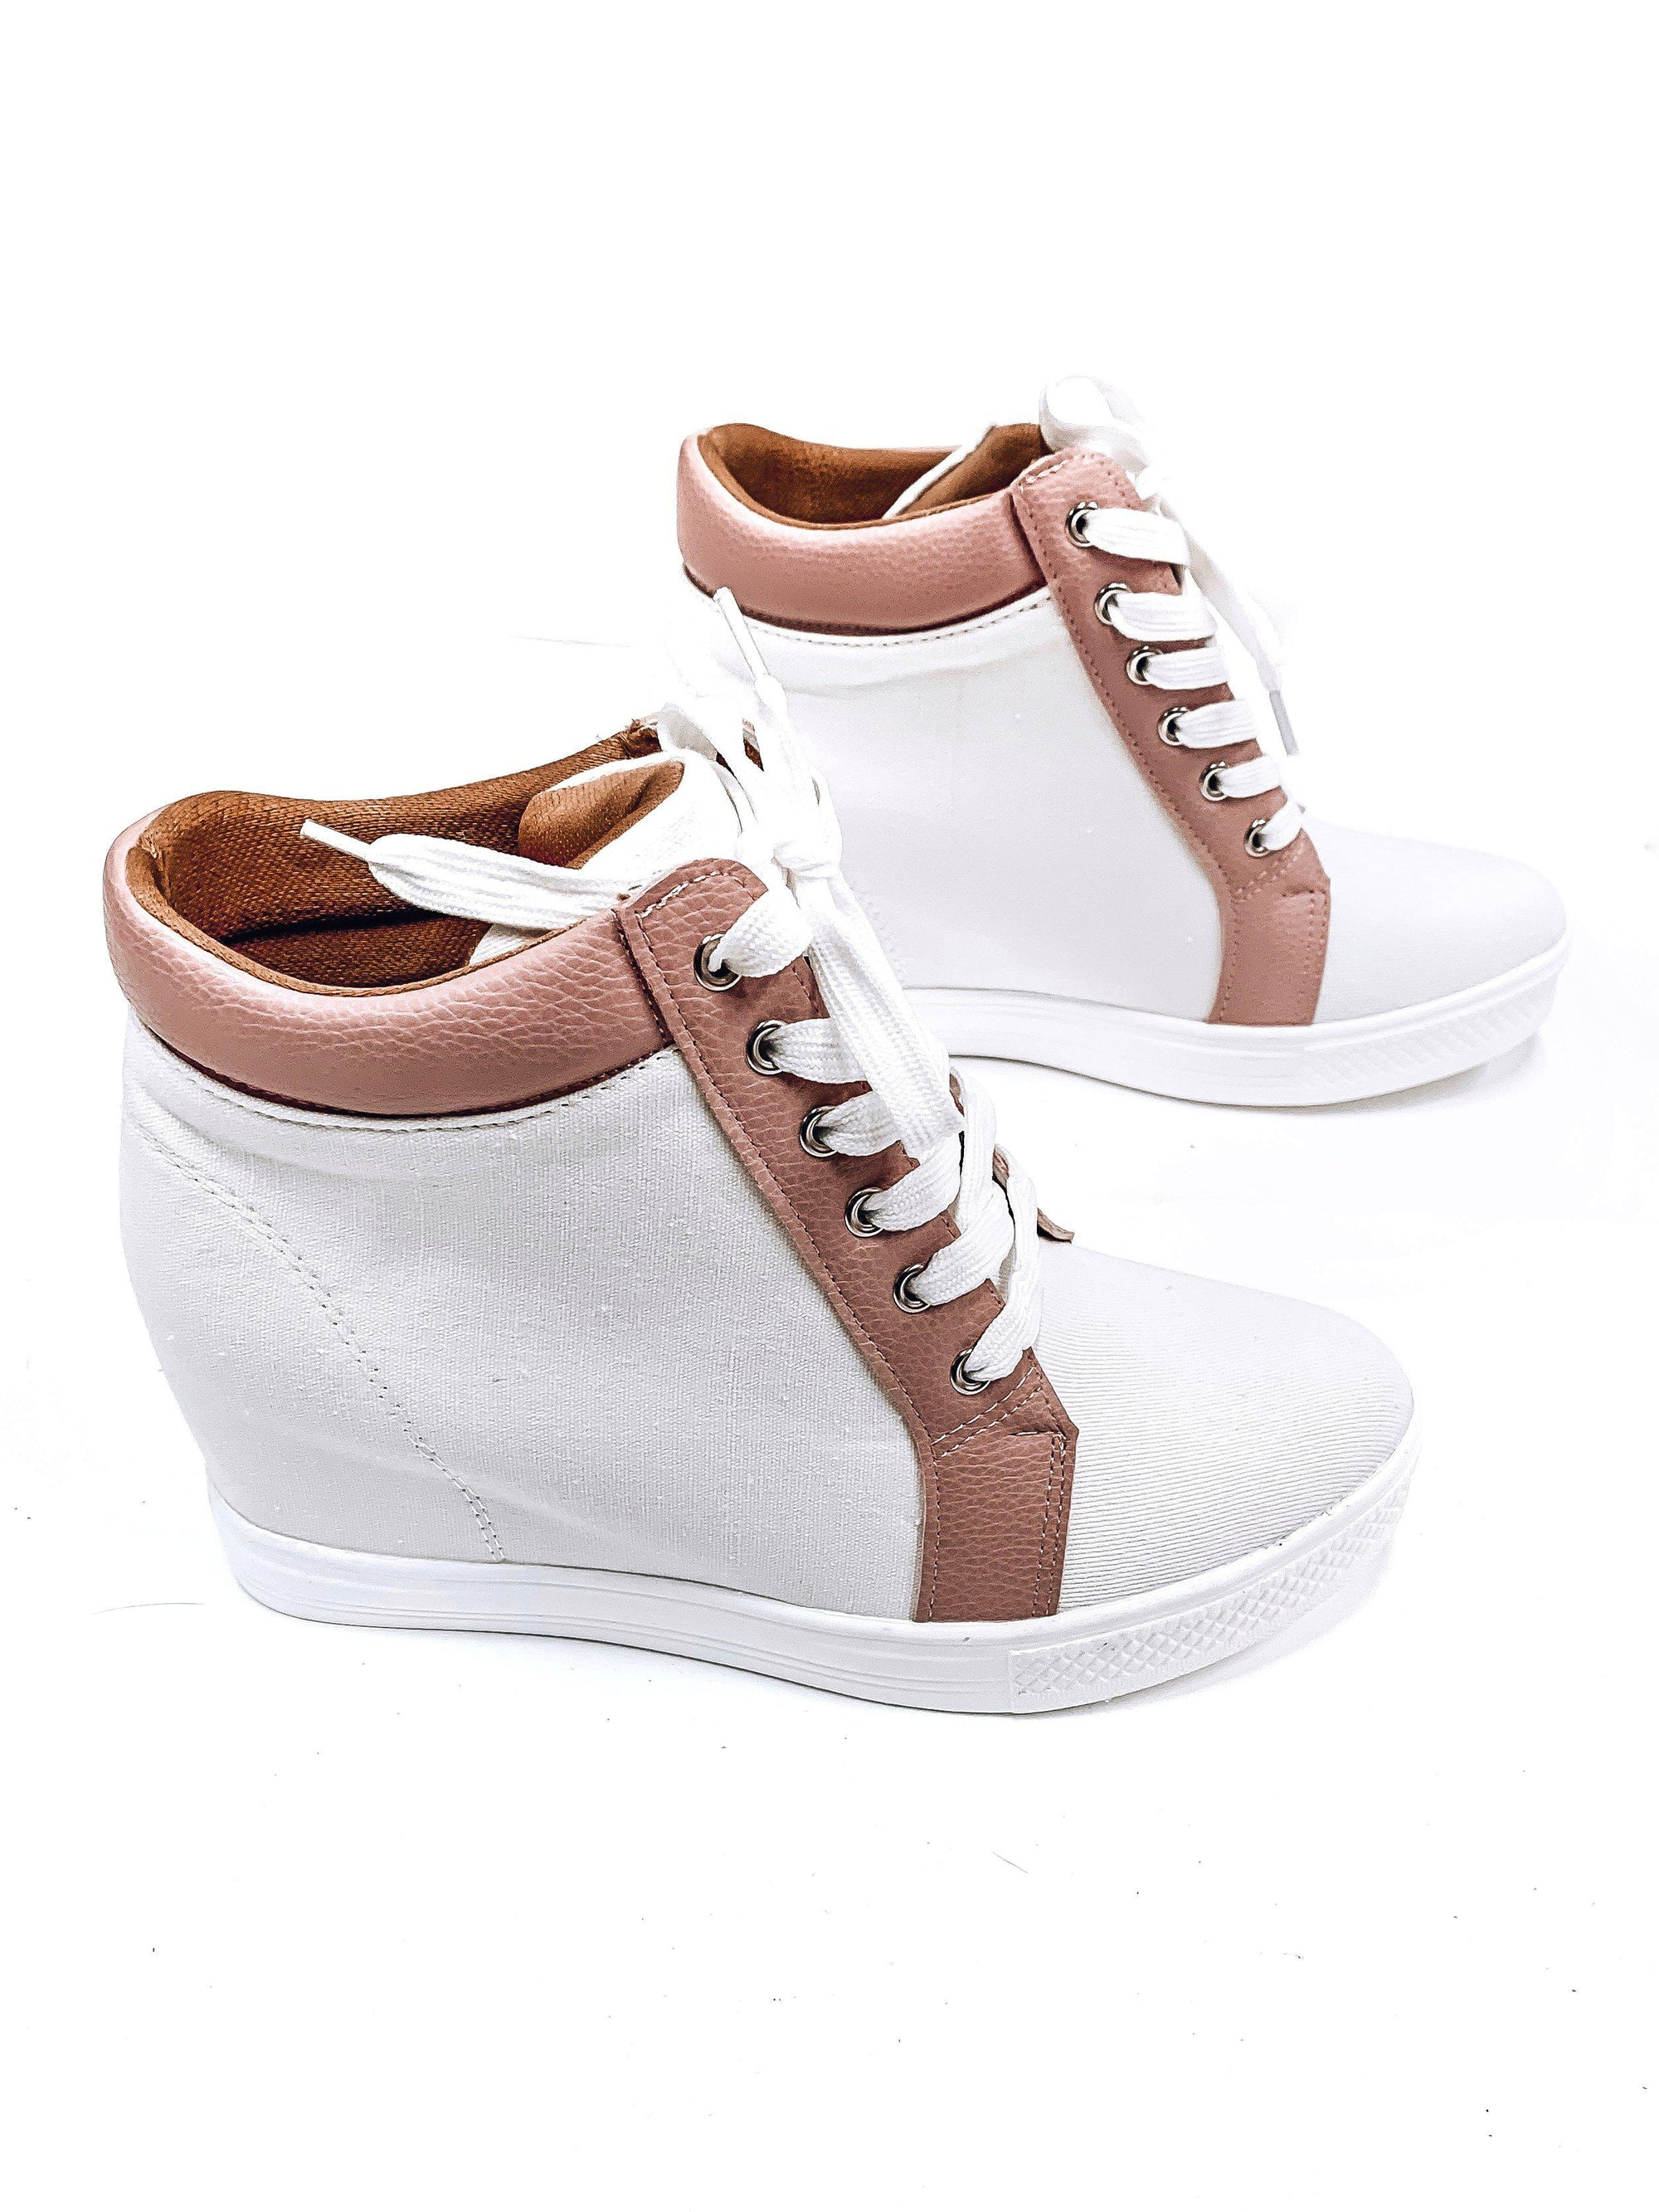 The Alex-Blush-Women's SHOES-New Arrivals-Runway Seven